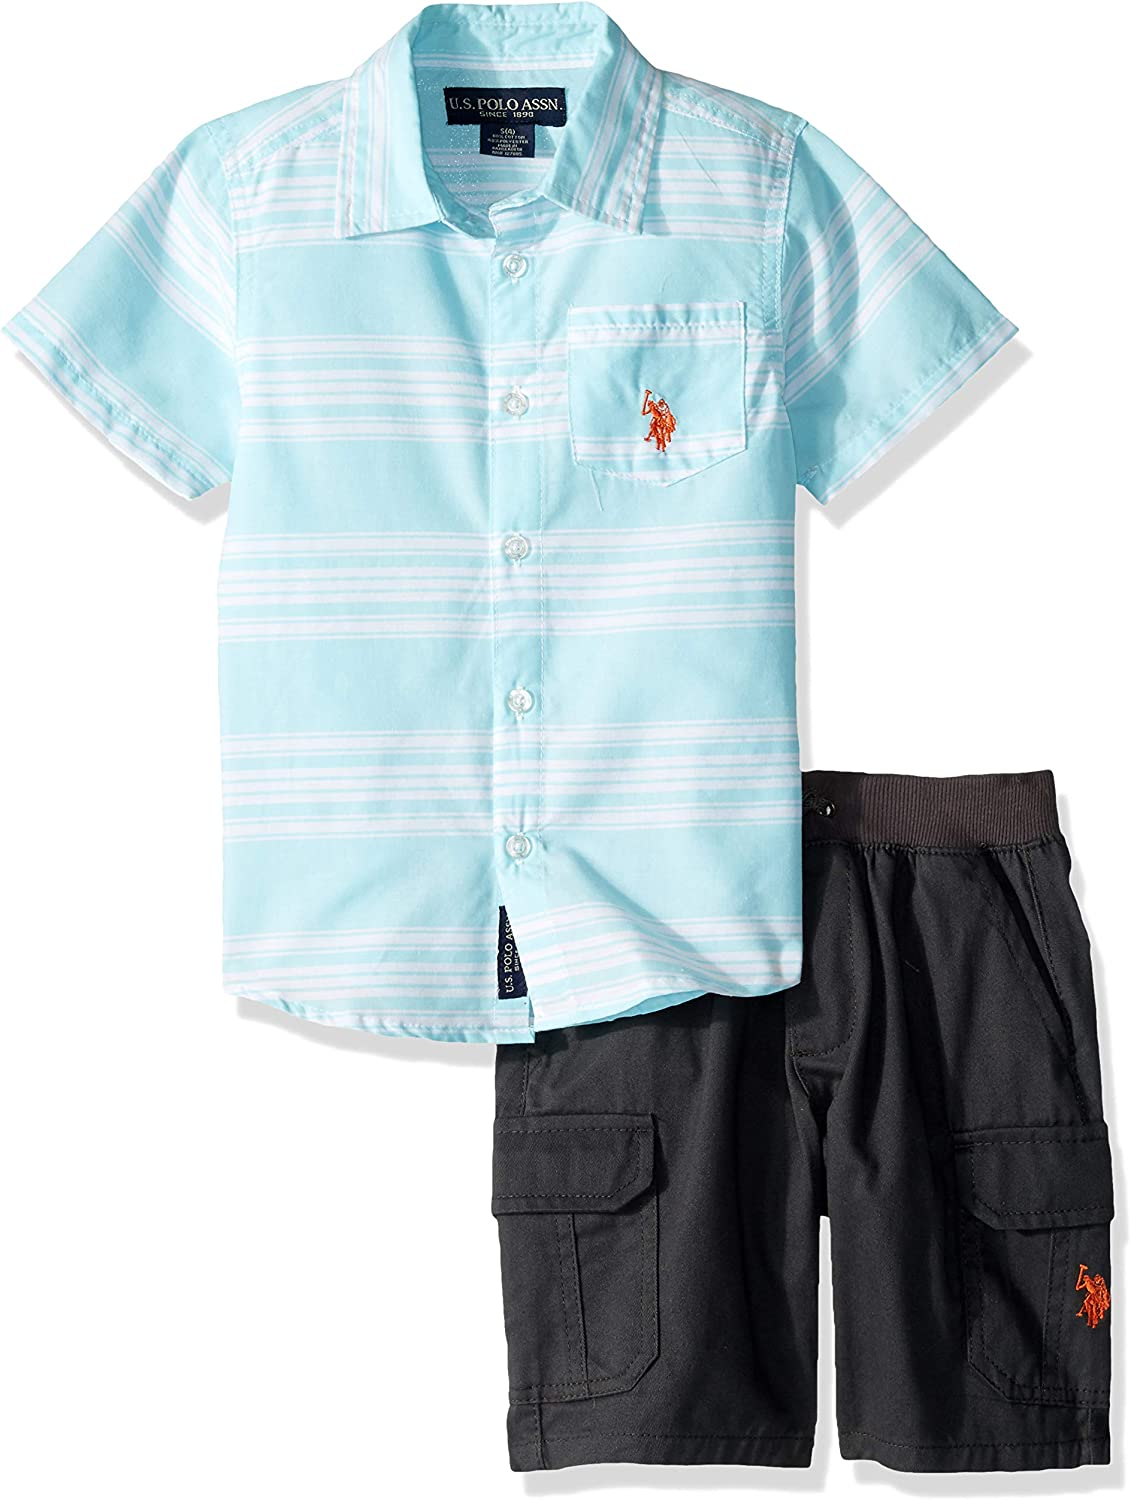 Boys 3 Piece Short Sleeve Woven Henley T-Shirt U.S and Jogger Set Polo Assn